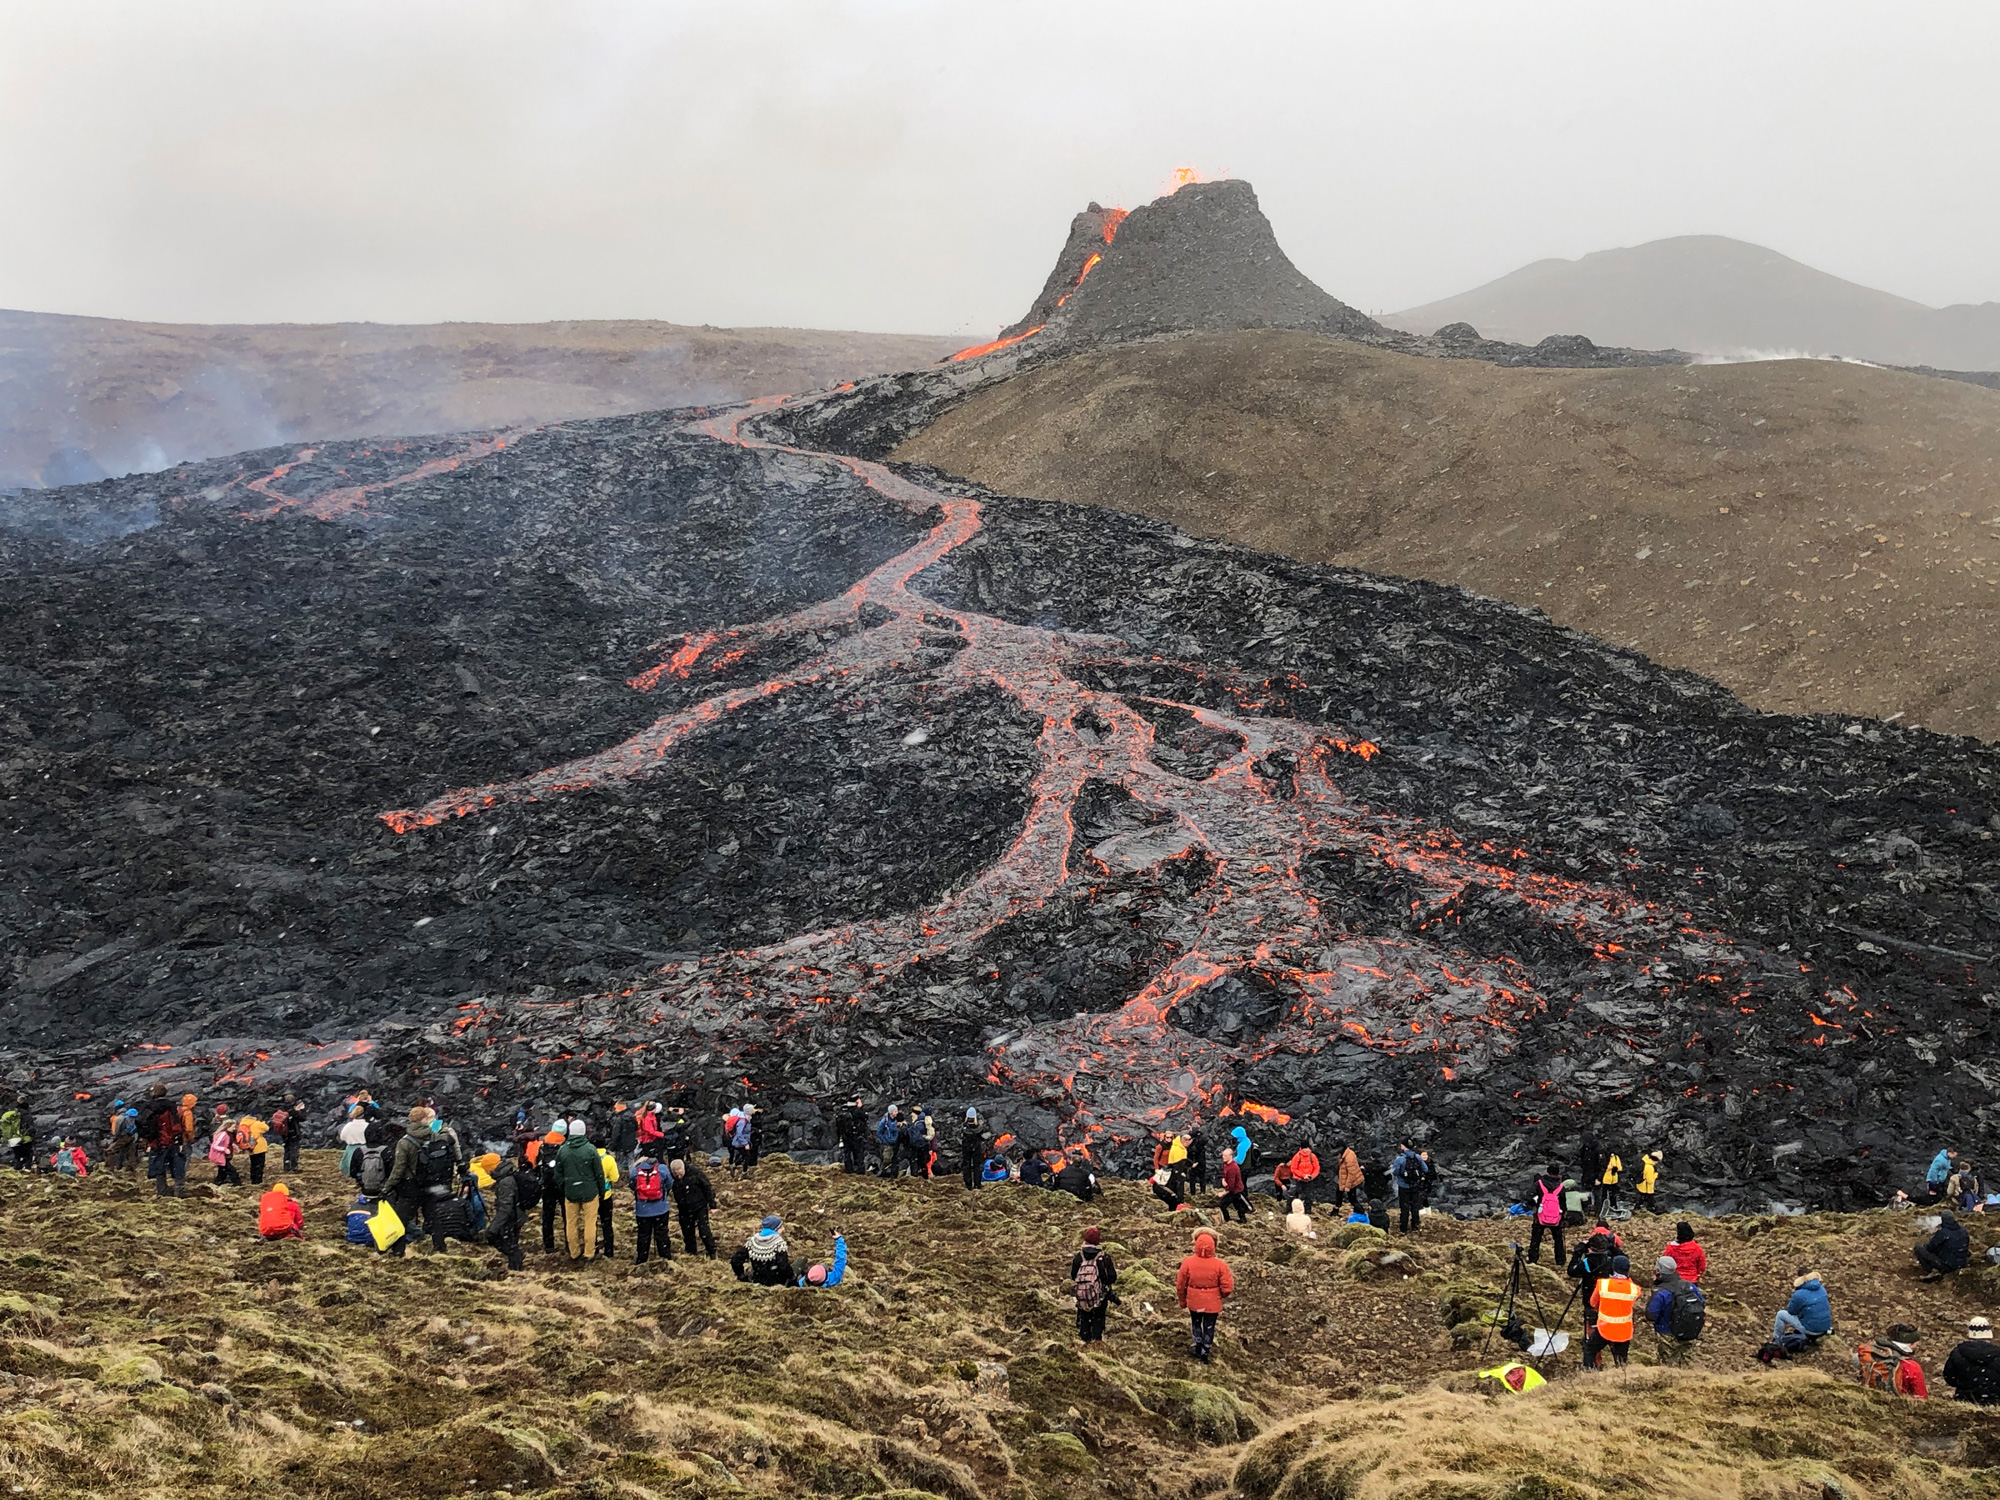 Onlookers staring at a lava flow.